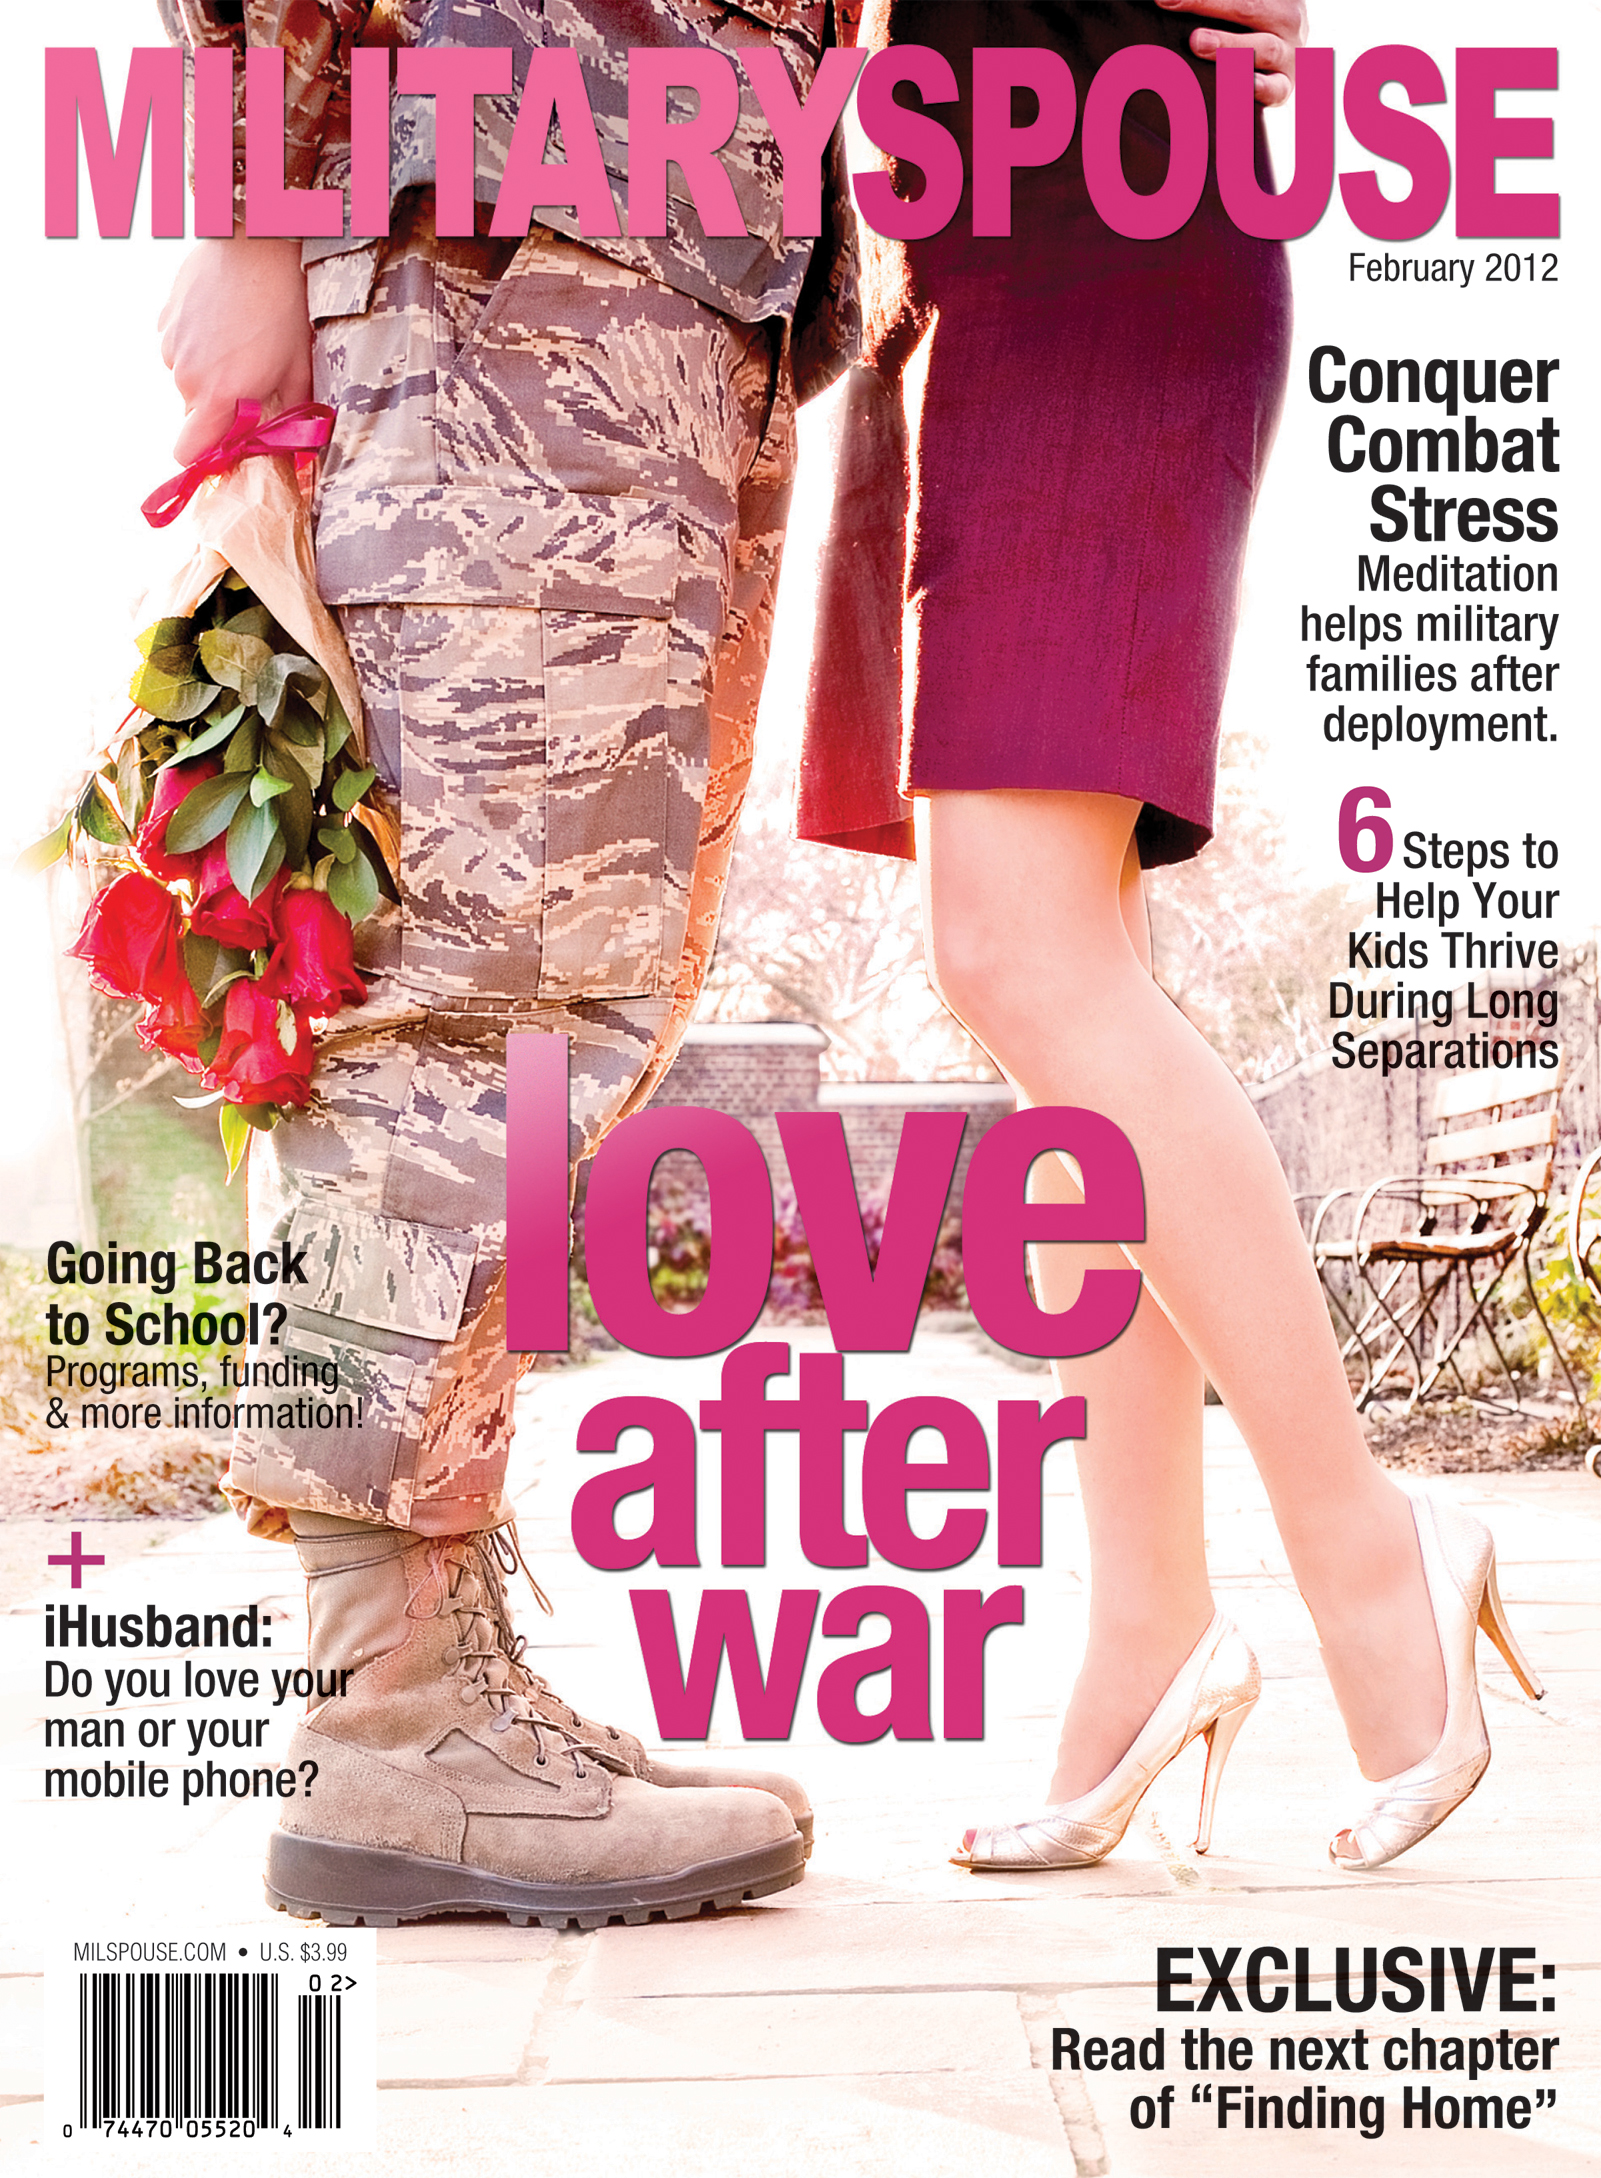 Cover - February 2012 issue Military Spouse magazine